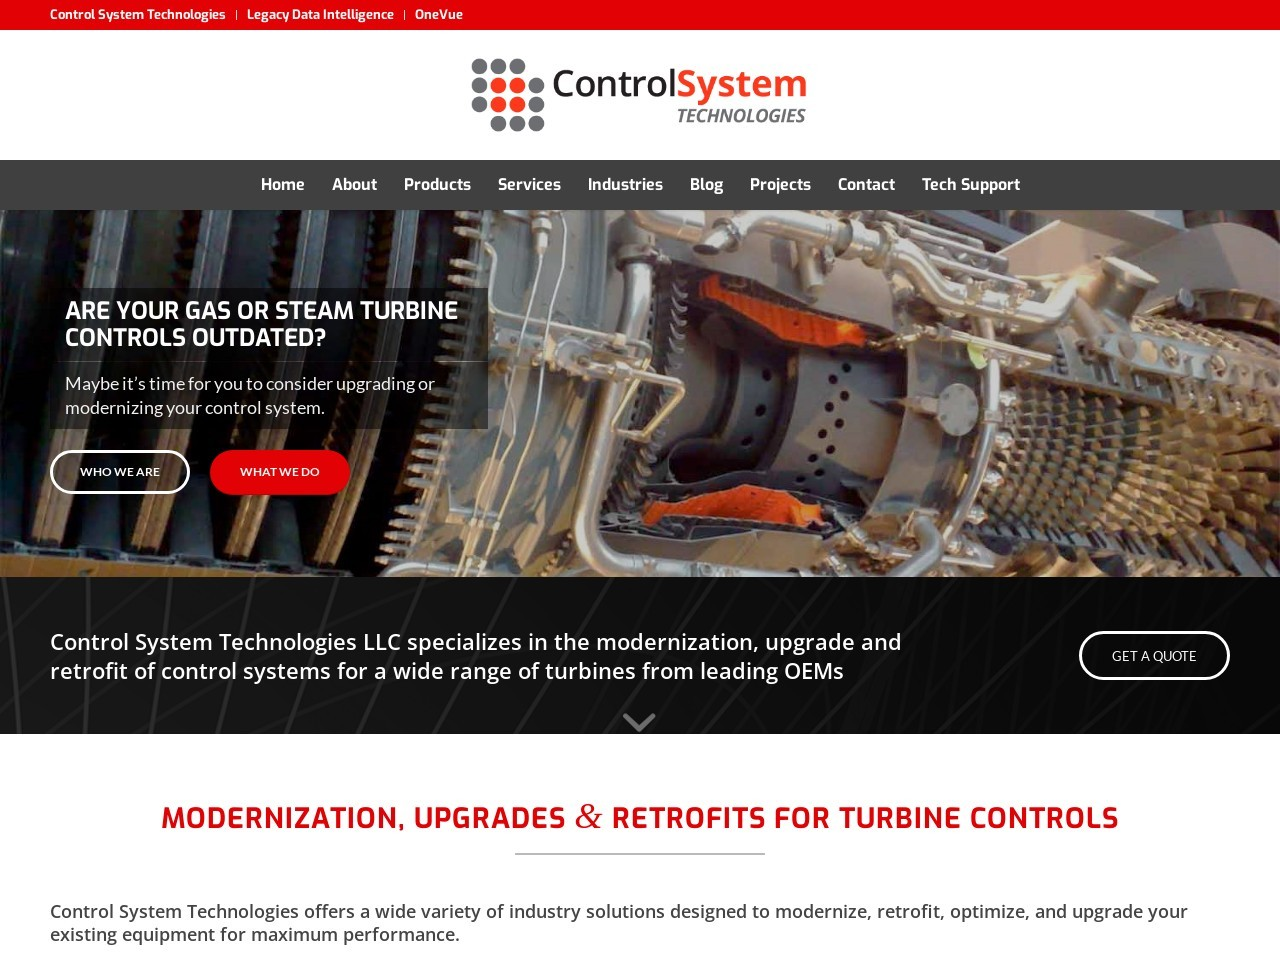 Control System Technologies